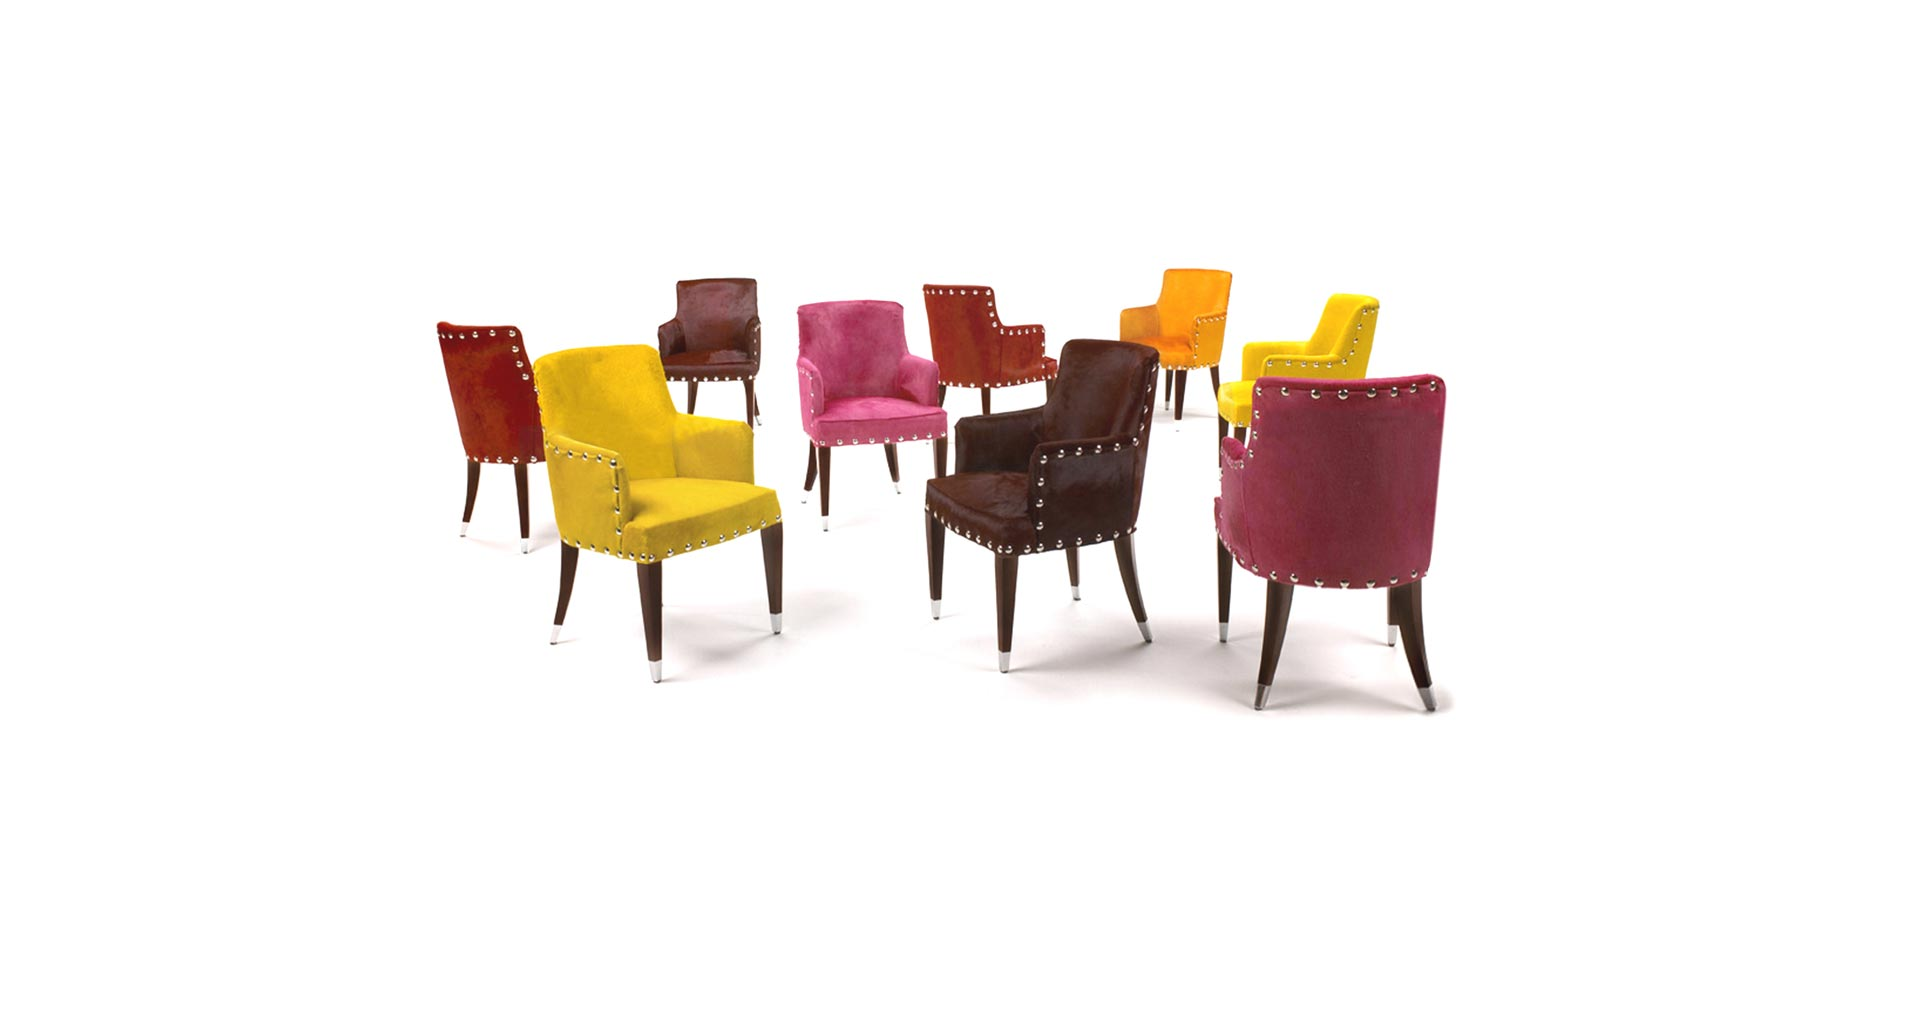 'Fiorenza' armchairs in mahogany shown with pony skin upholstery in various colours. Dimensions (cm): 60(width) x 51(depth) x 97(height)